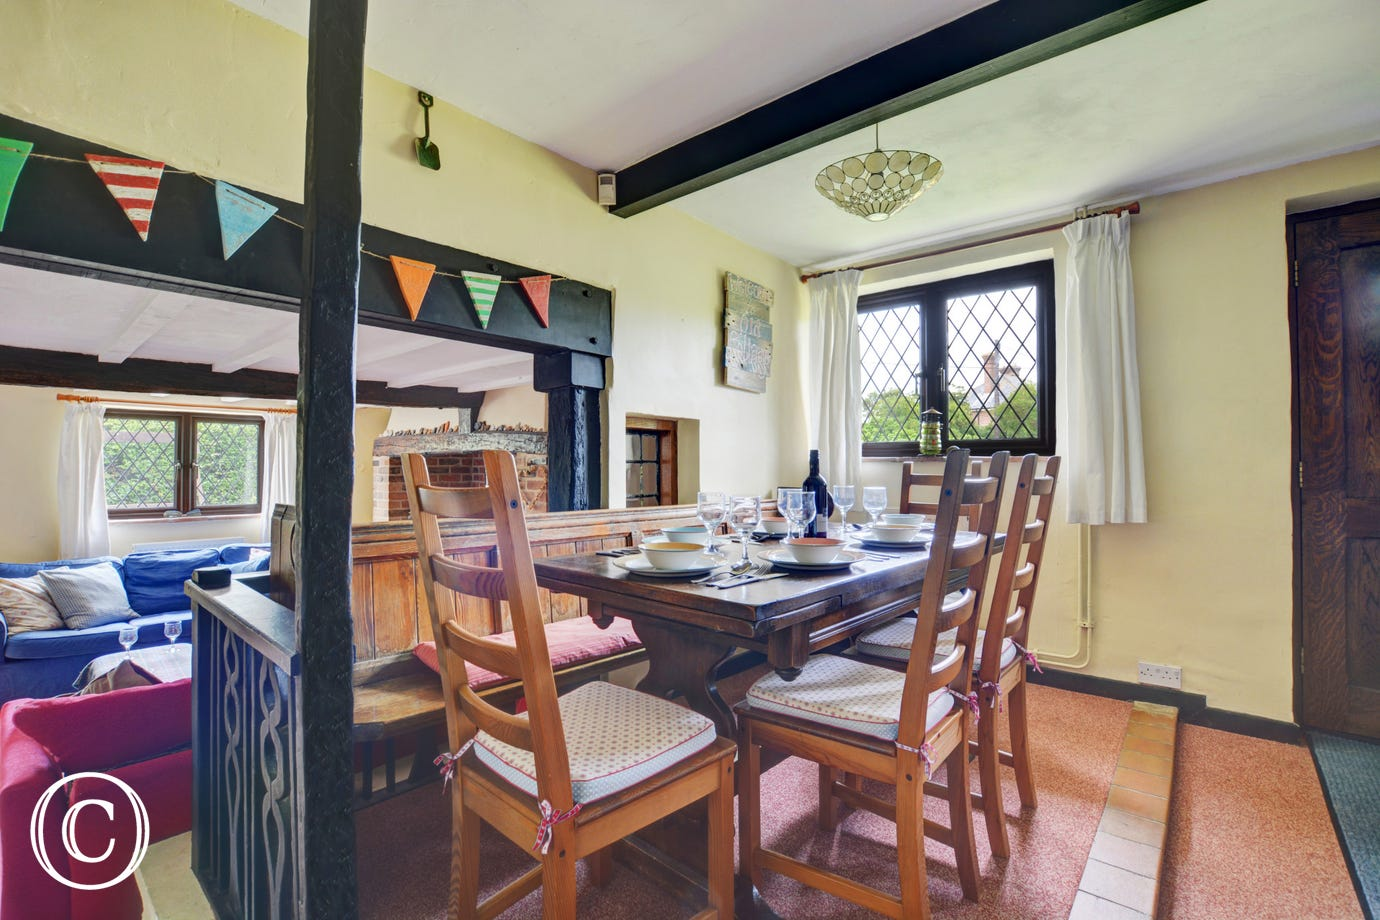 A lovely family dining area with ample seating for everyone